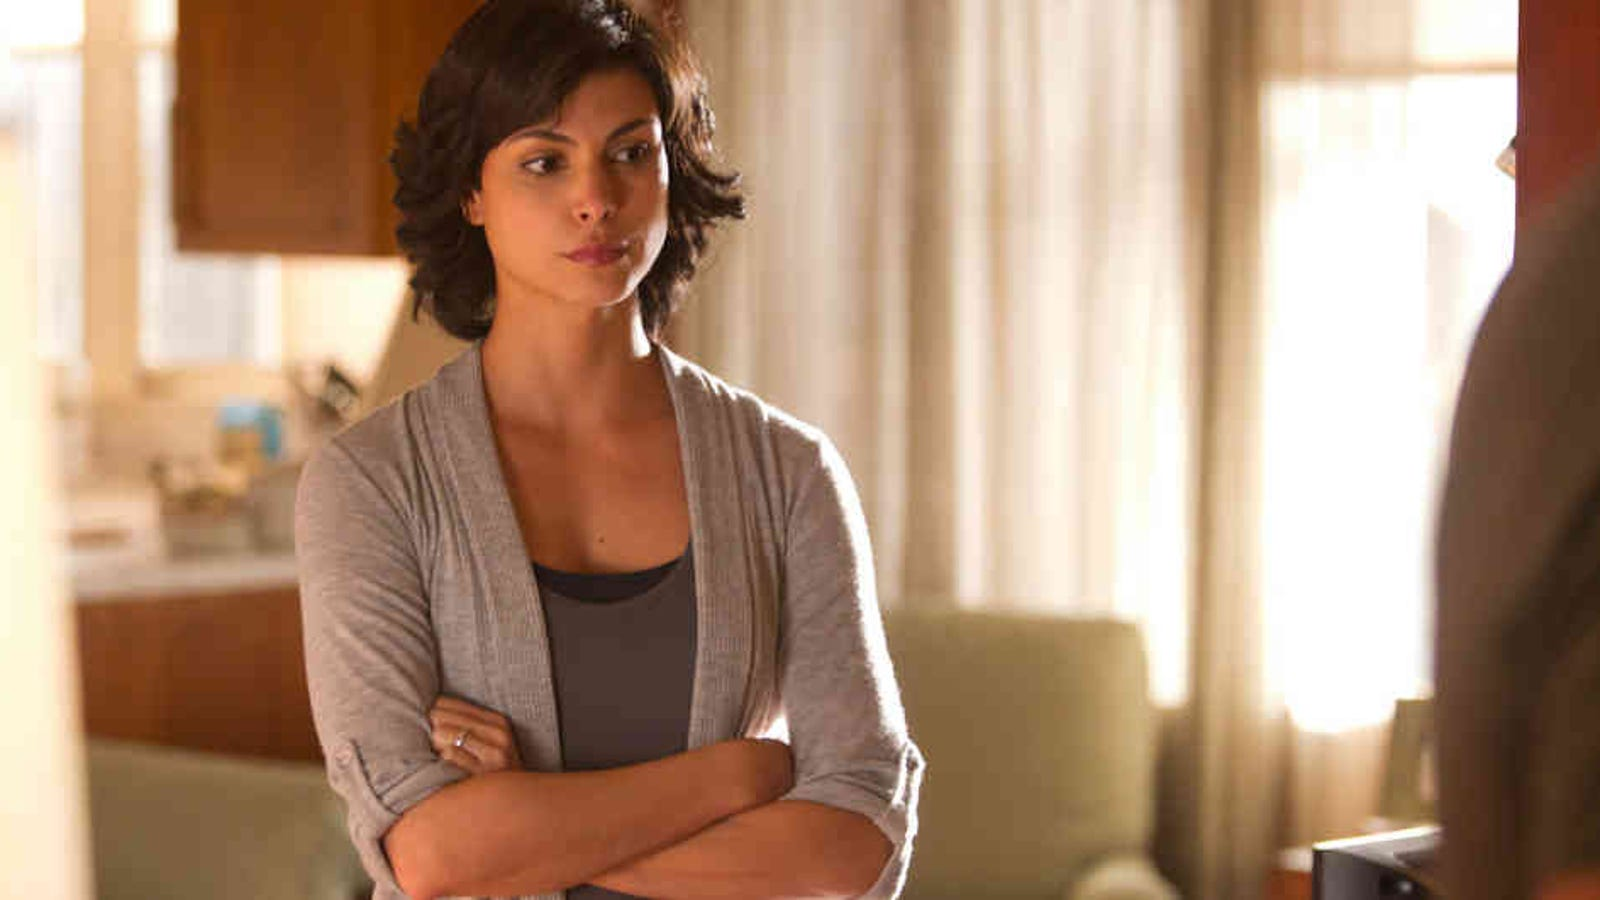 Morena Baccarin Joins Gotham As One Of Batman's Future Allies